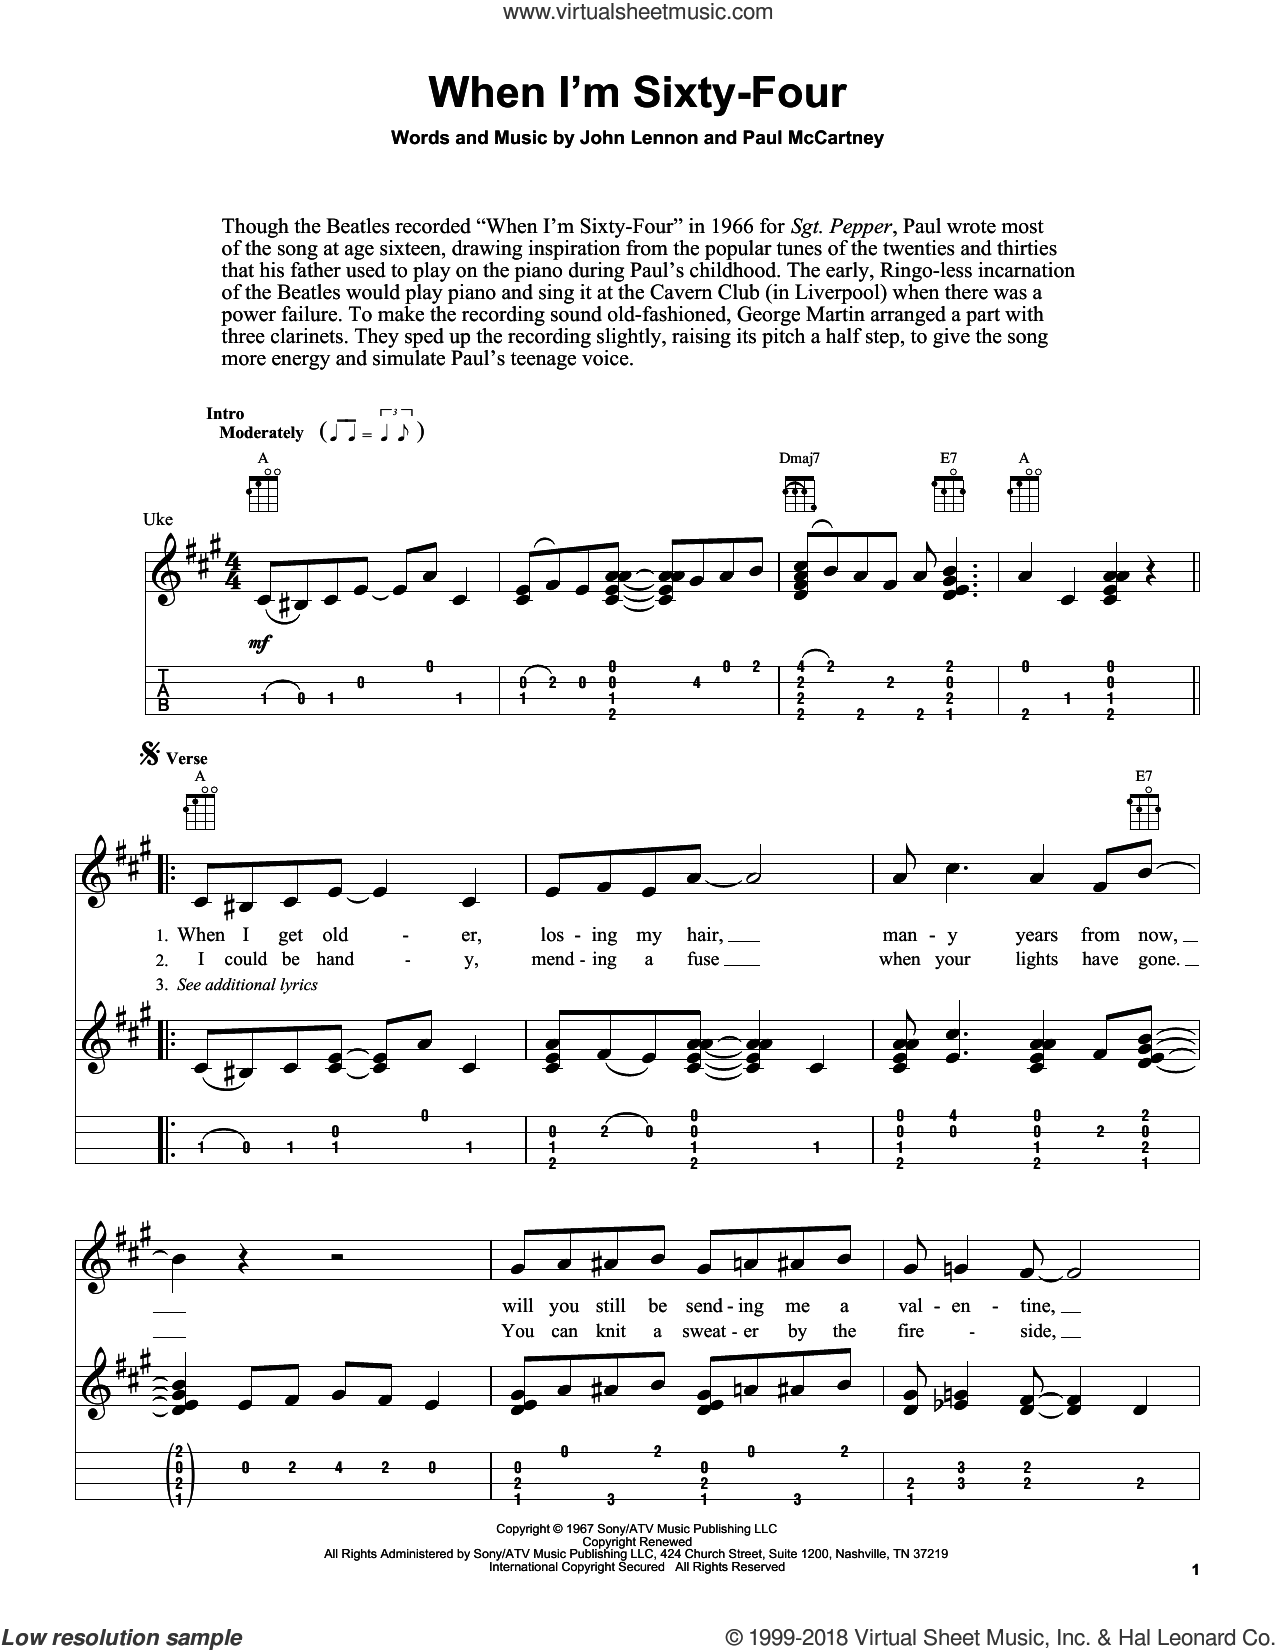 When I'm Sixty-Four sheet music for ukulele by The Beatles, Fred Sokolow, John Lennon and Paul McCartney, intermediate skill level